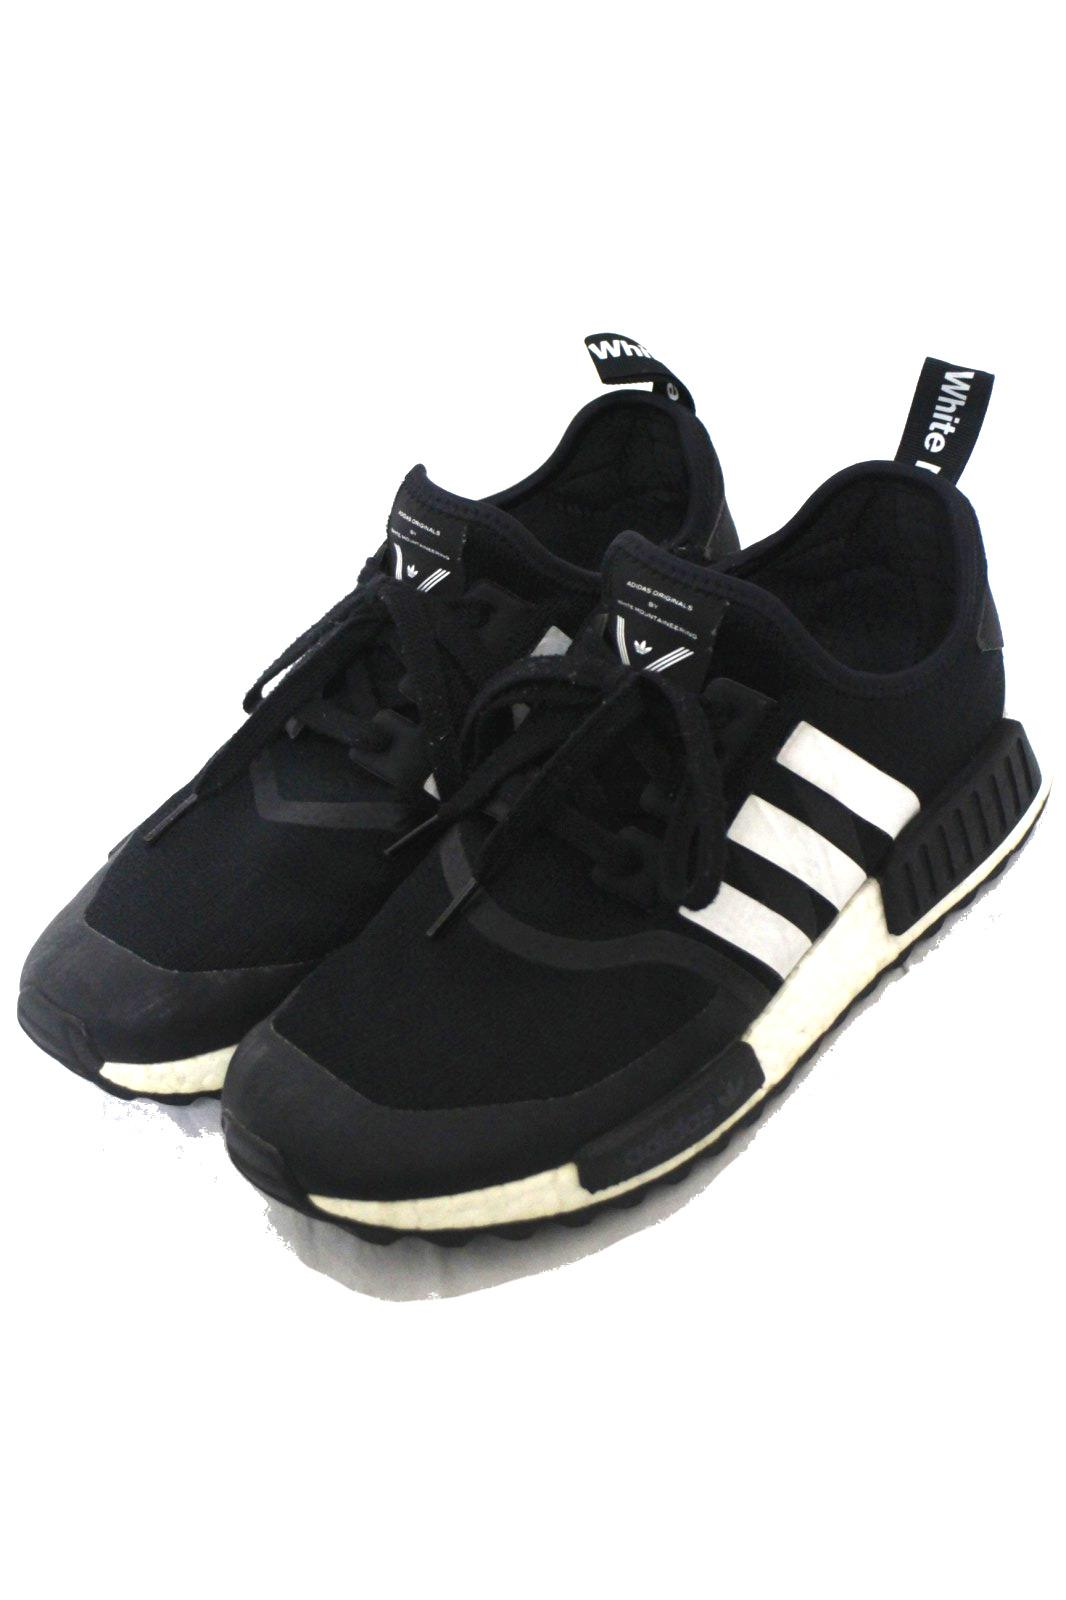 best sneakers b3a23 b68d8 [中古]adidas Originals by White Mountaineering(アディダス オリジナルス バイ  ホワイトマウンテニアリング)のメンズ シューズ NMD TRAIL